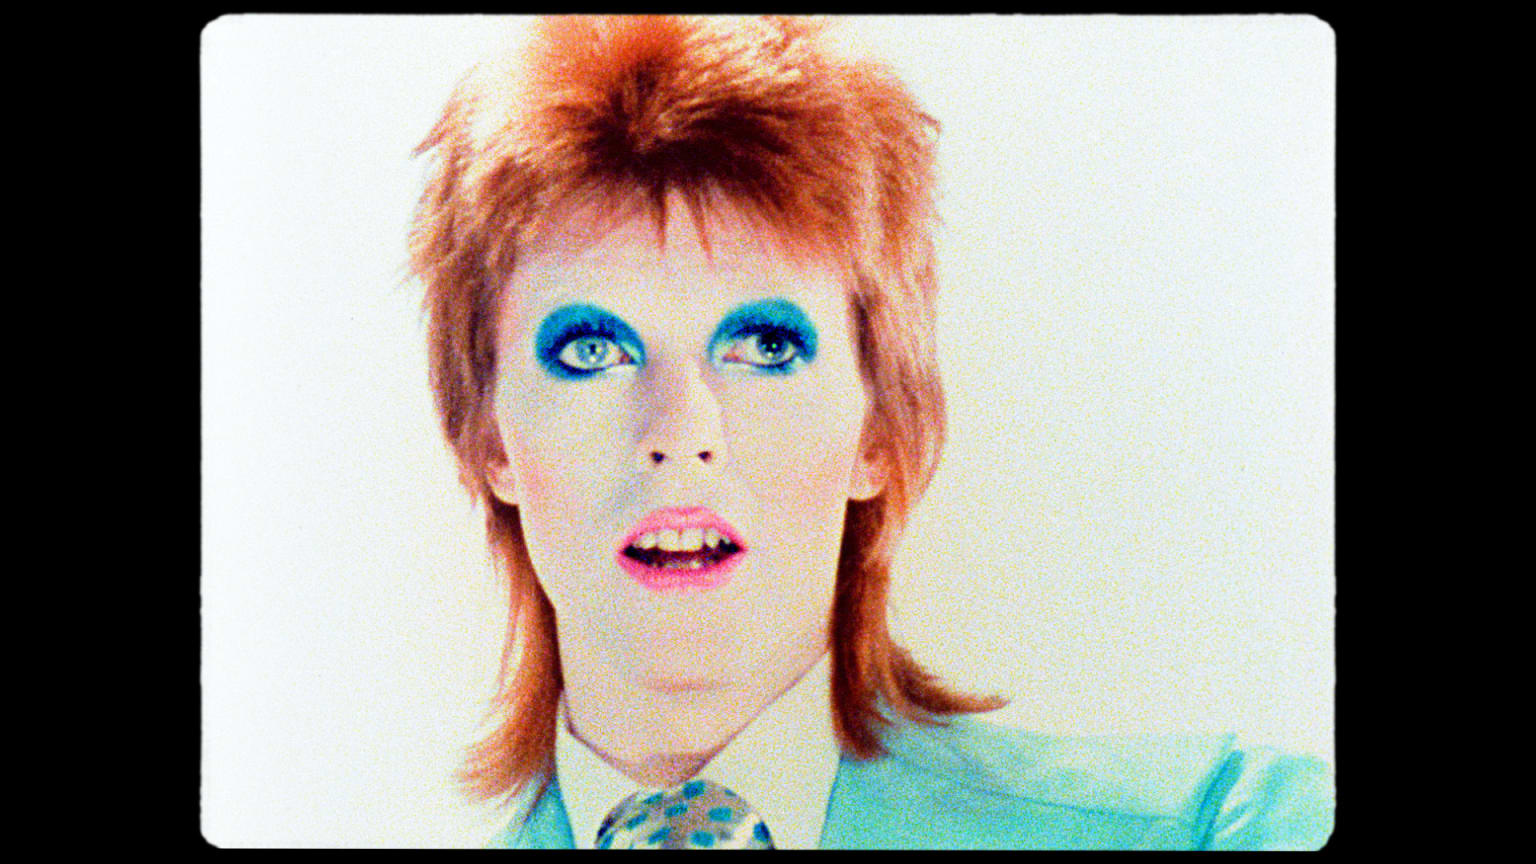 """David Bowie """"Life On Mars"""" Re-Edit with Photographer Mick Rock"""